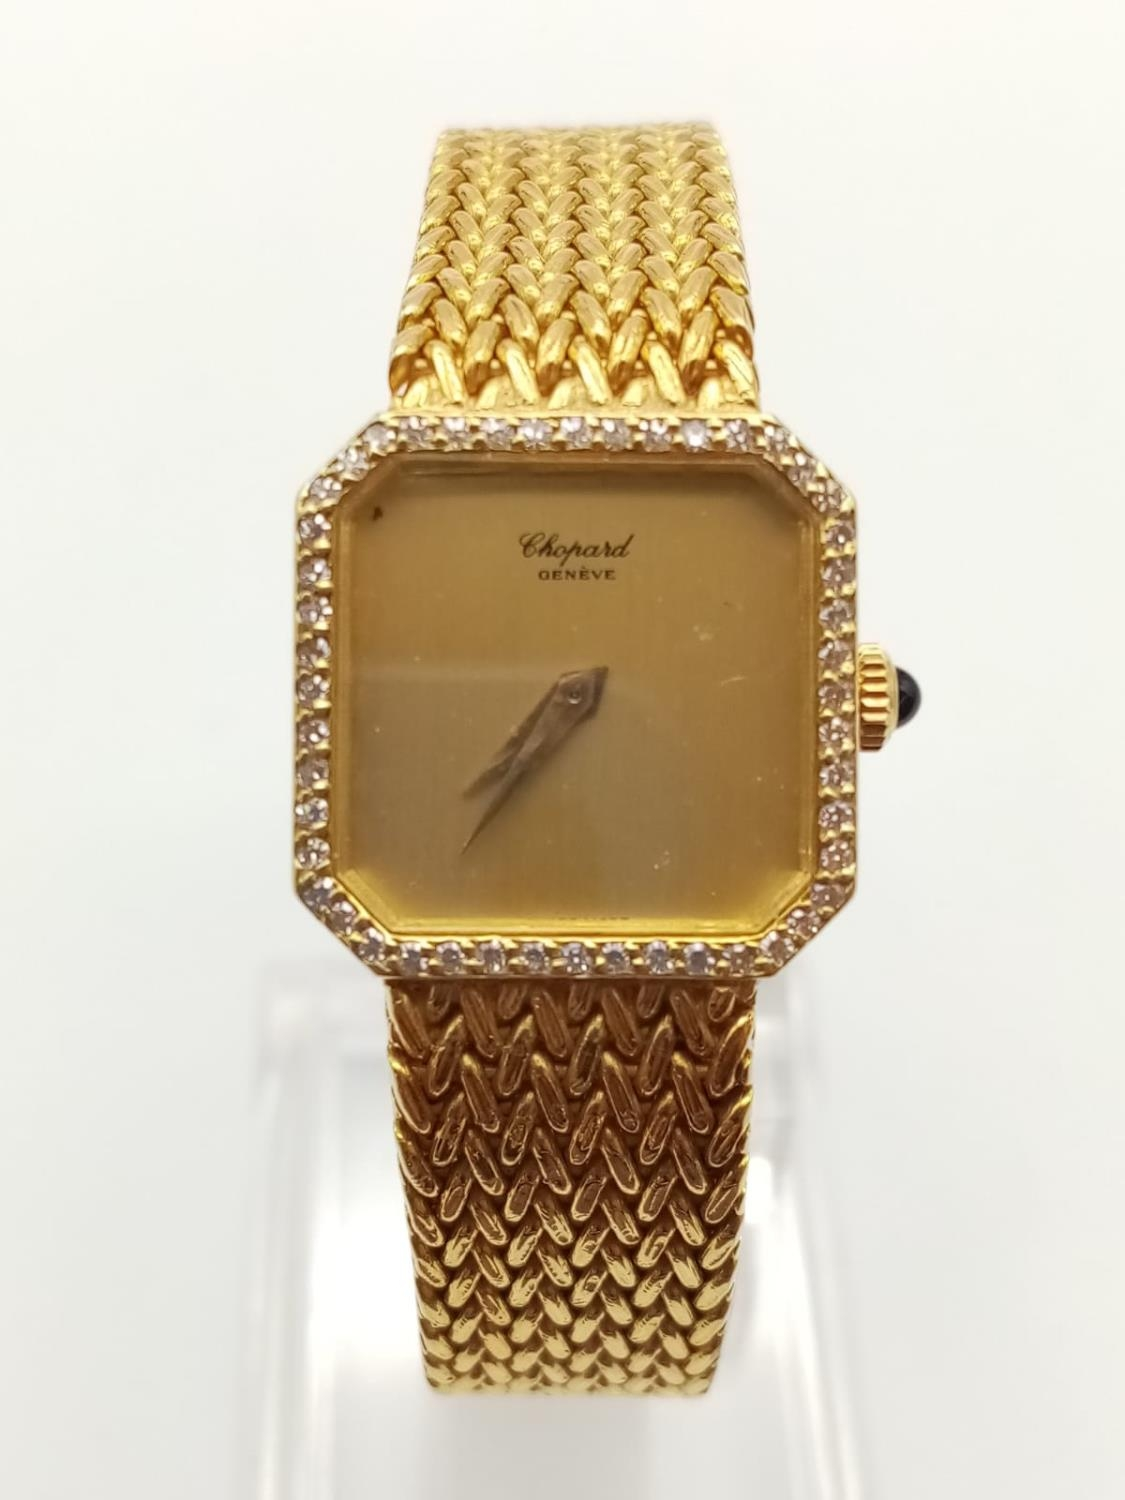 18K GOLD DRESS WATCH BY CHOPARD OF GENEVA WITH DIAMOND BEZEL AND SOLID GOLD STRAP. 20MM